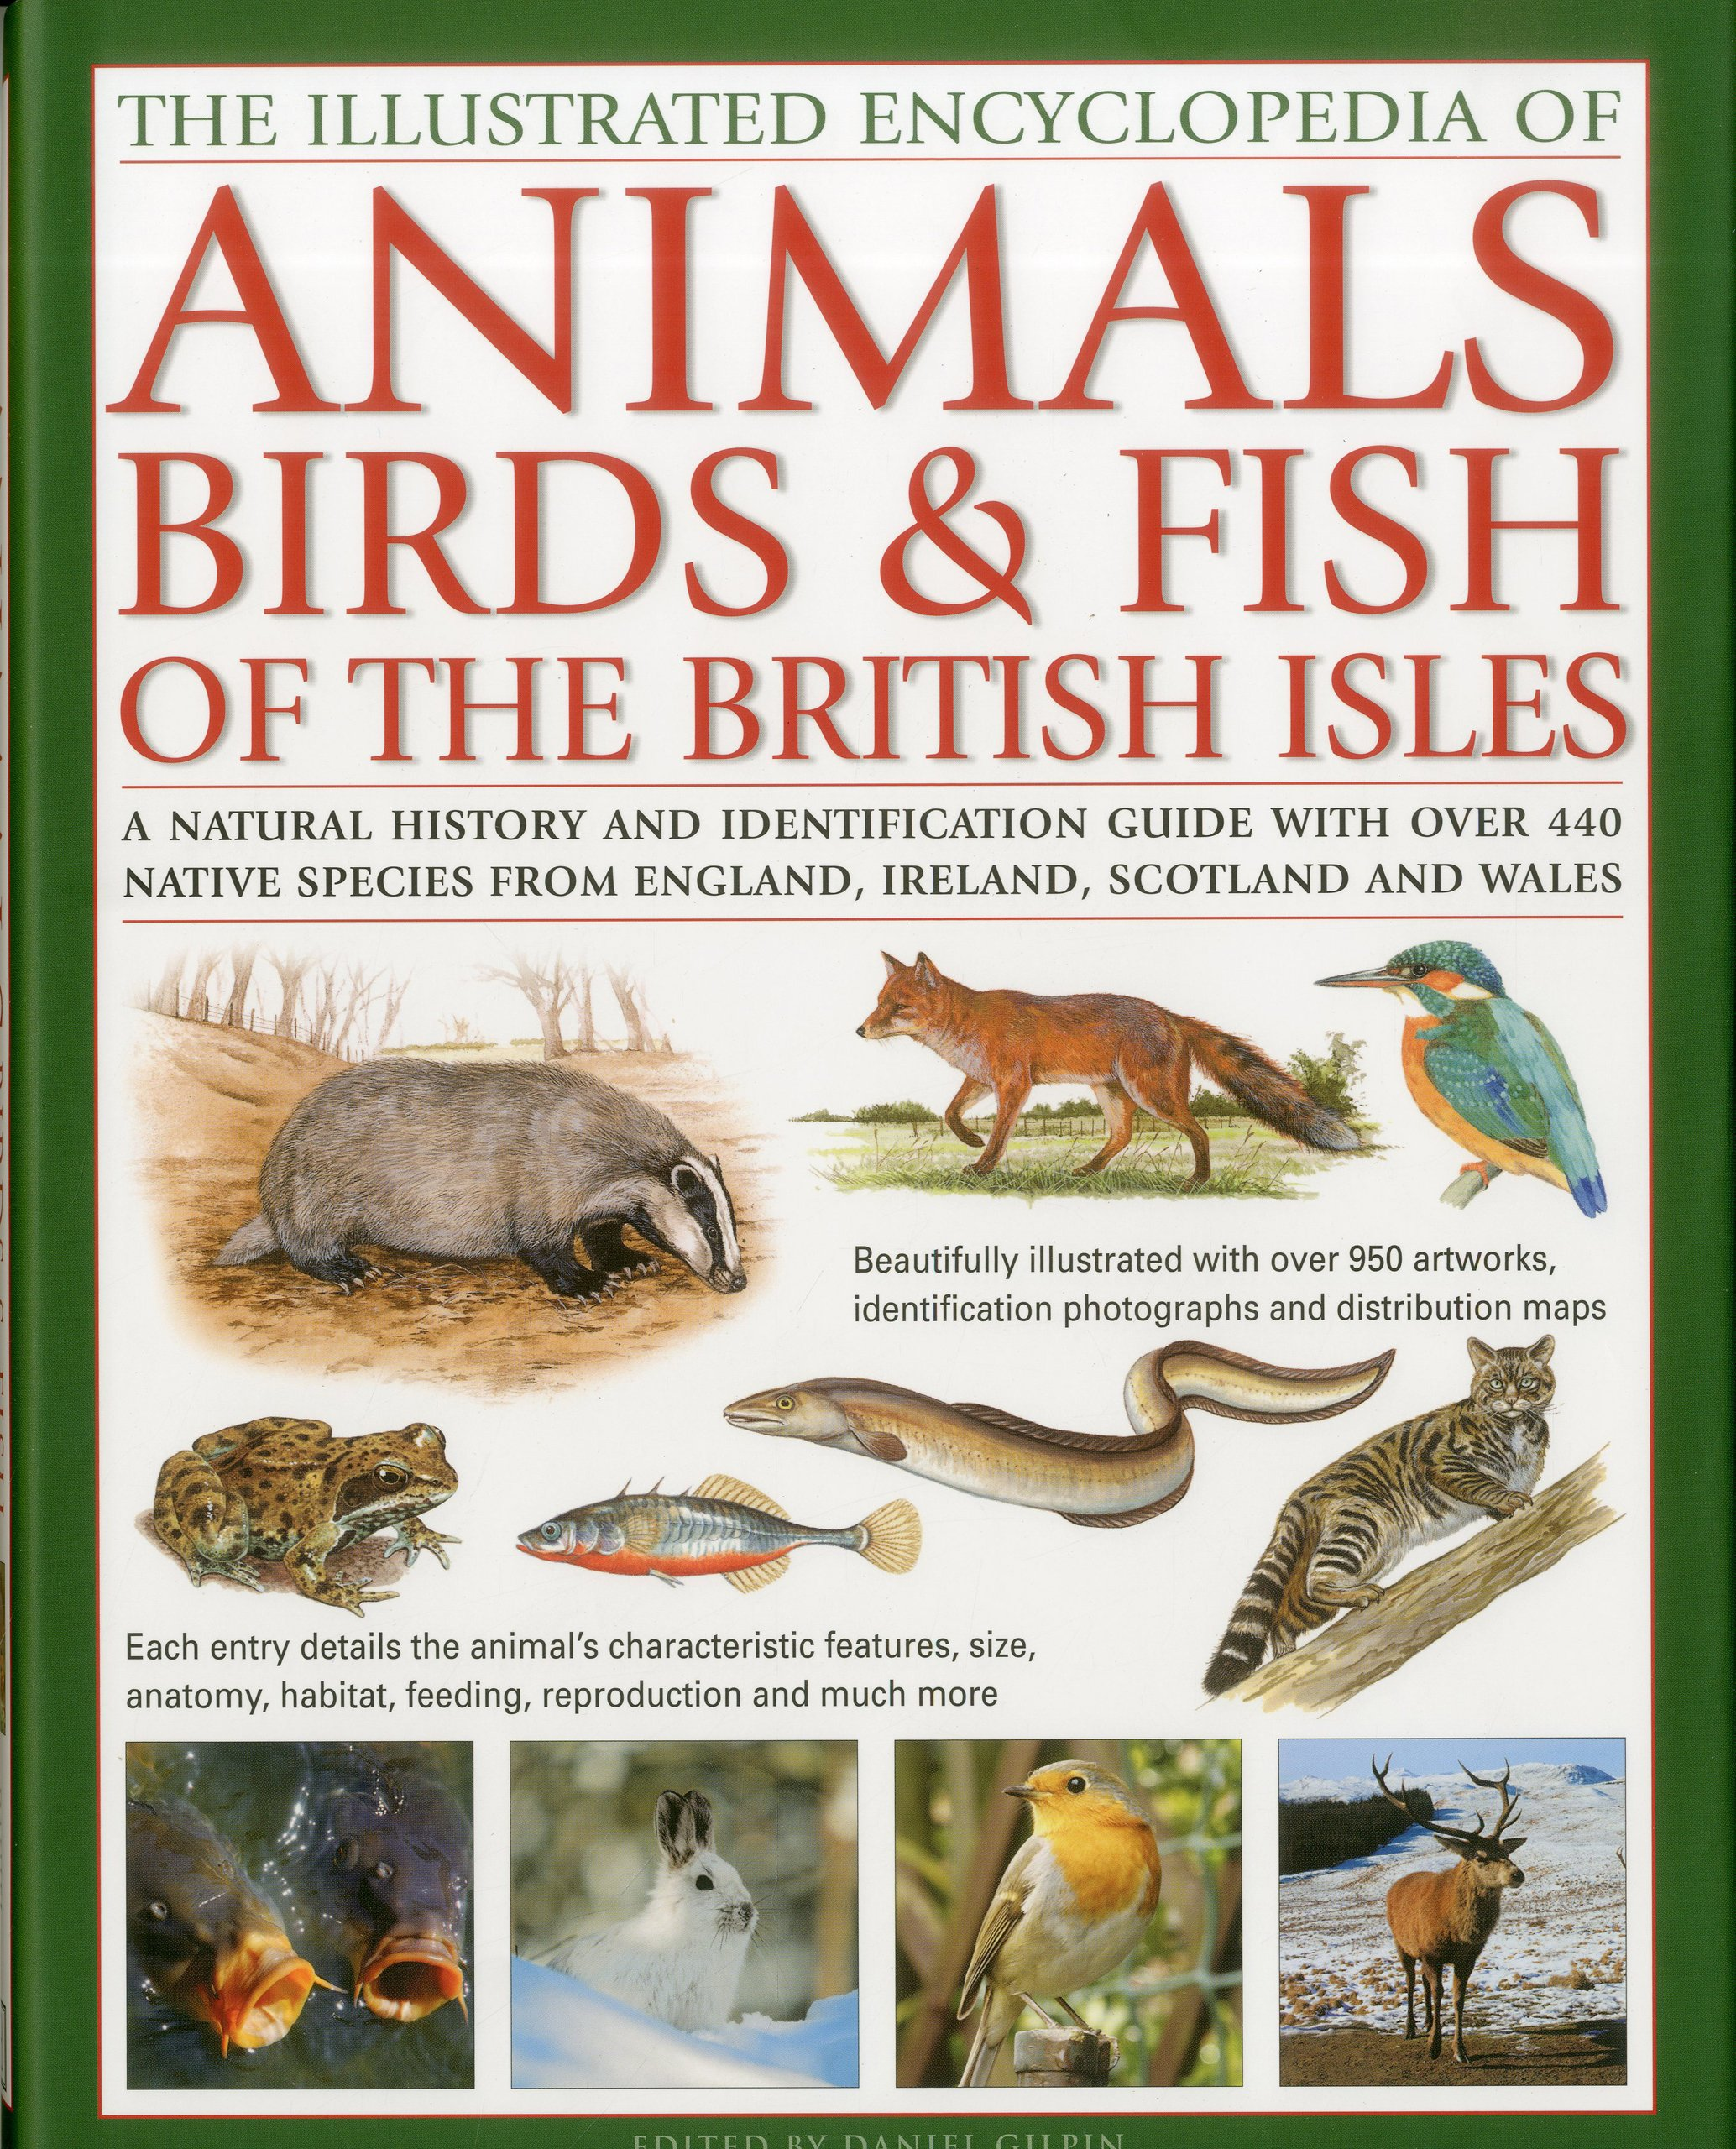 Freshwater fish england - The Illustrated Encyclopaedia Of Animals Birds And Fish Of British Isles A Natural History And Identification Guide To The Indigenous Wildlife Of And